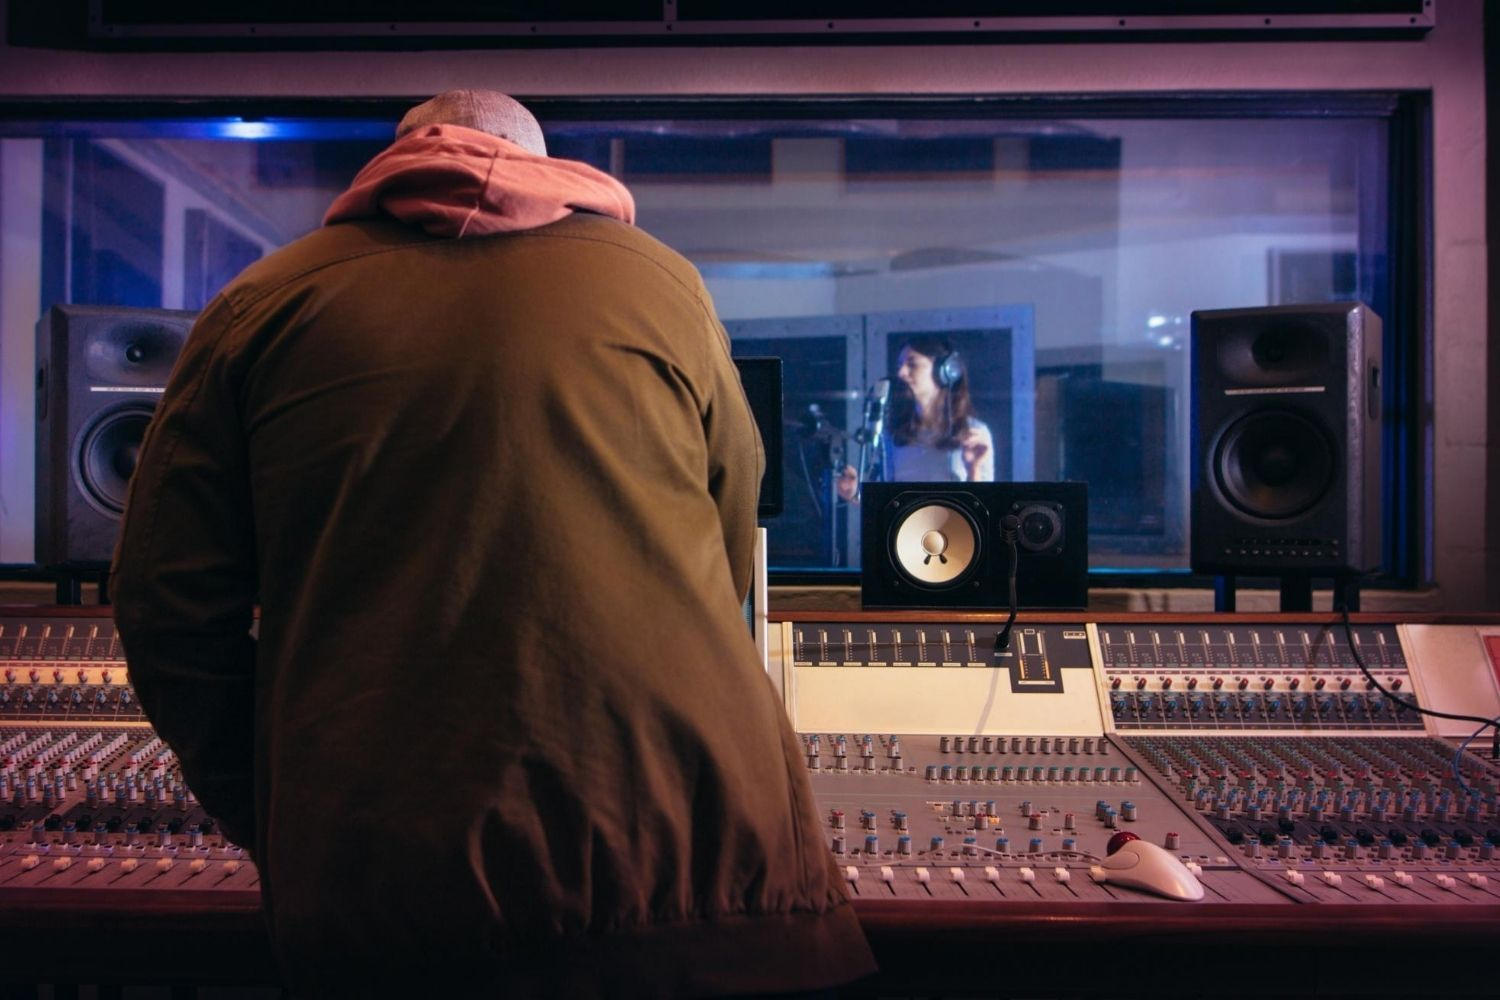 Create a career in music business through entrepreneurship and find a worldwide market for music jobs